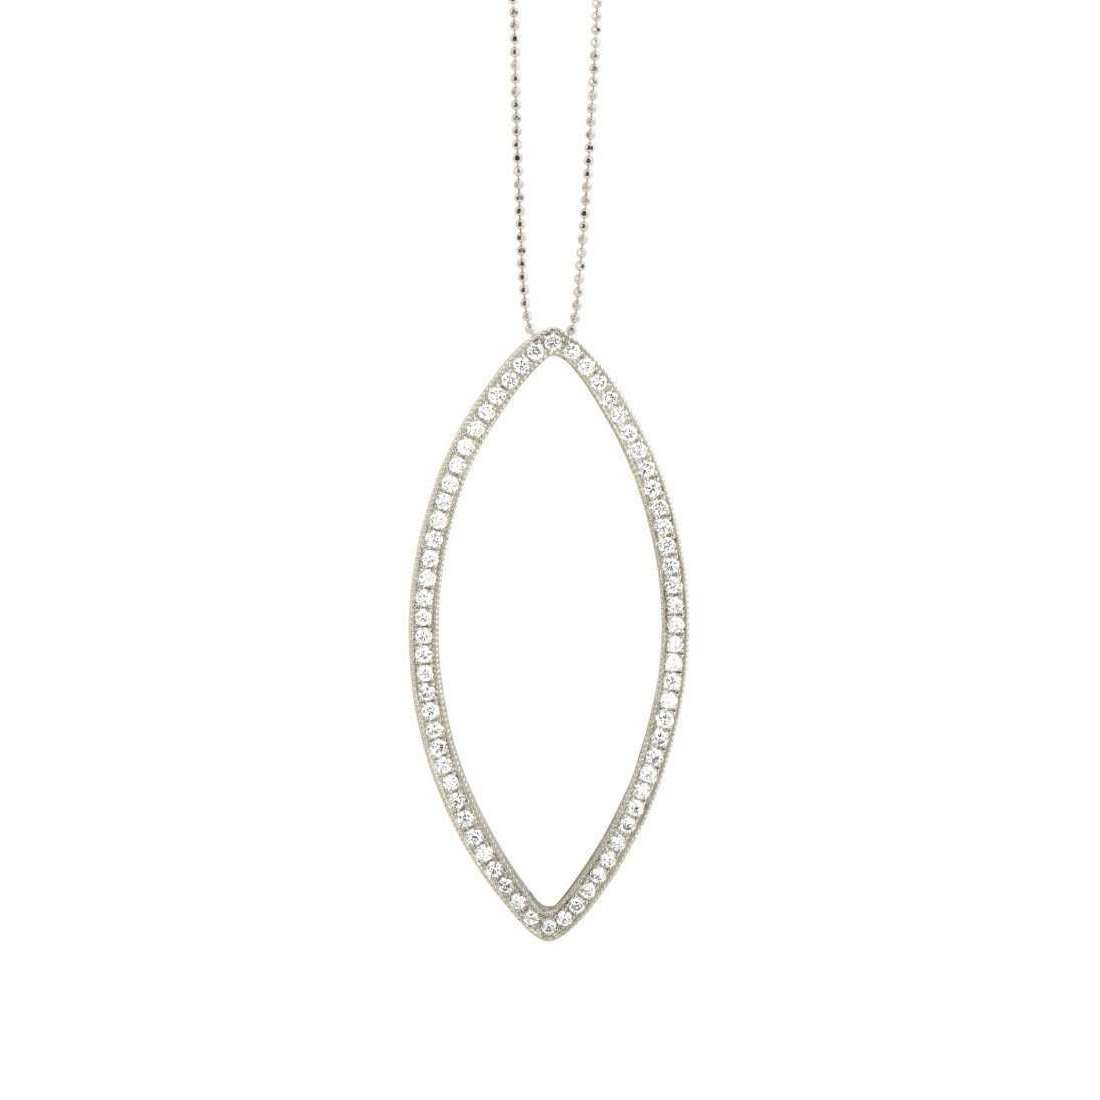 Edie 14kt White Gold Paved Eye Necklace with White Diamonds-Julez Bryant-JewelStreet US